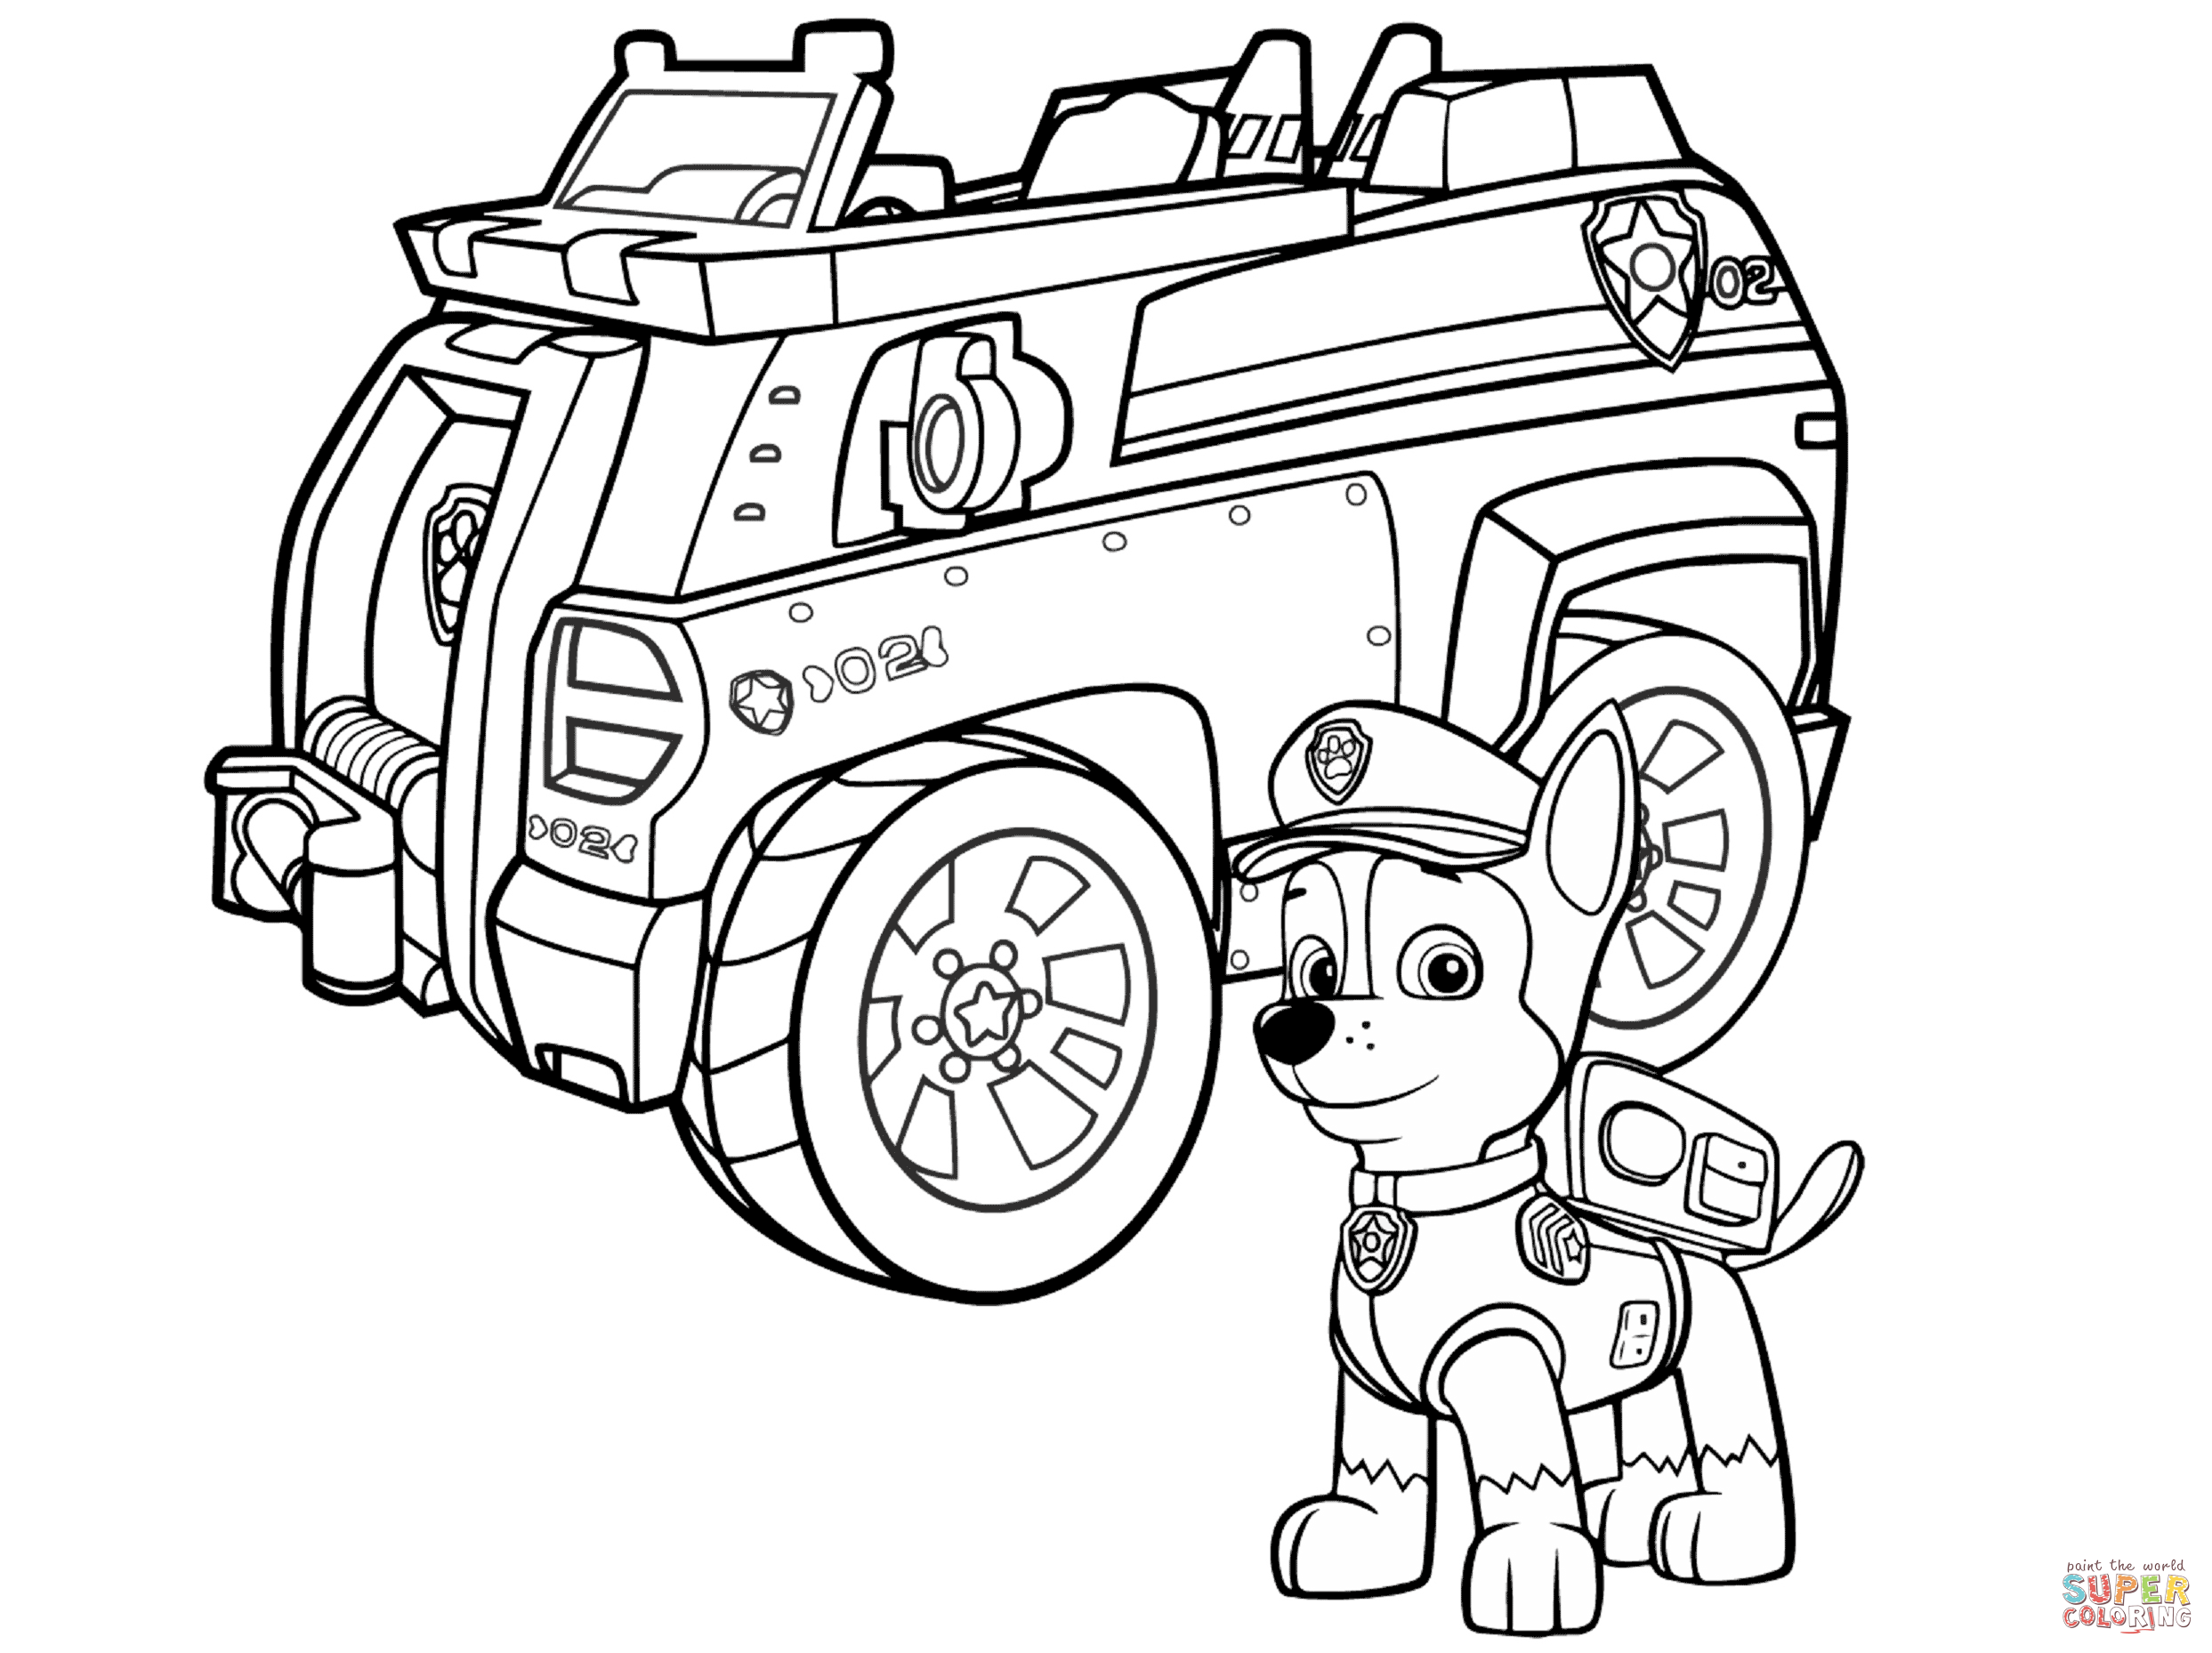 2486x1858 Lego Moto Police Car Coloring Pages Printable Best Of Page General